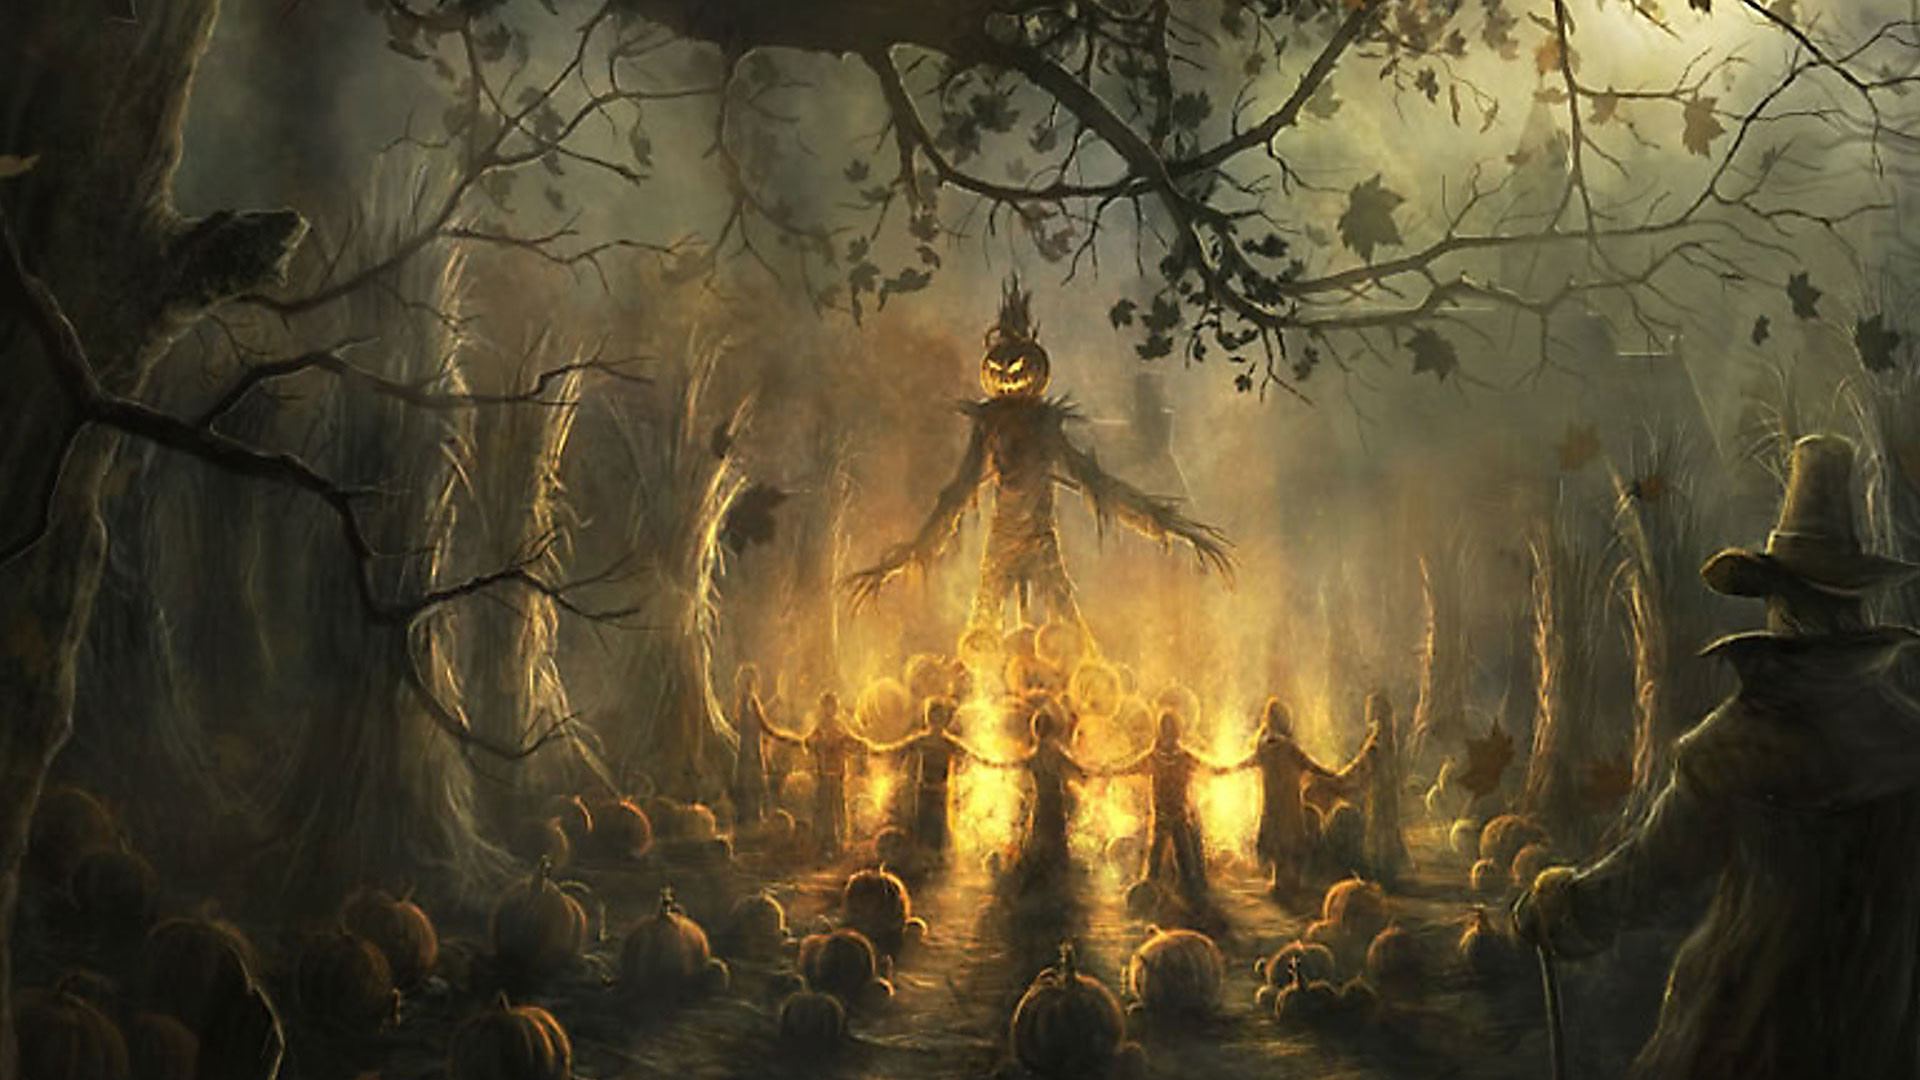 Hd scary wallpapers 63 images - Scary halloween pumpkin wallpaper ...